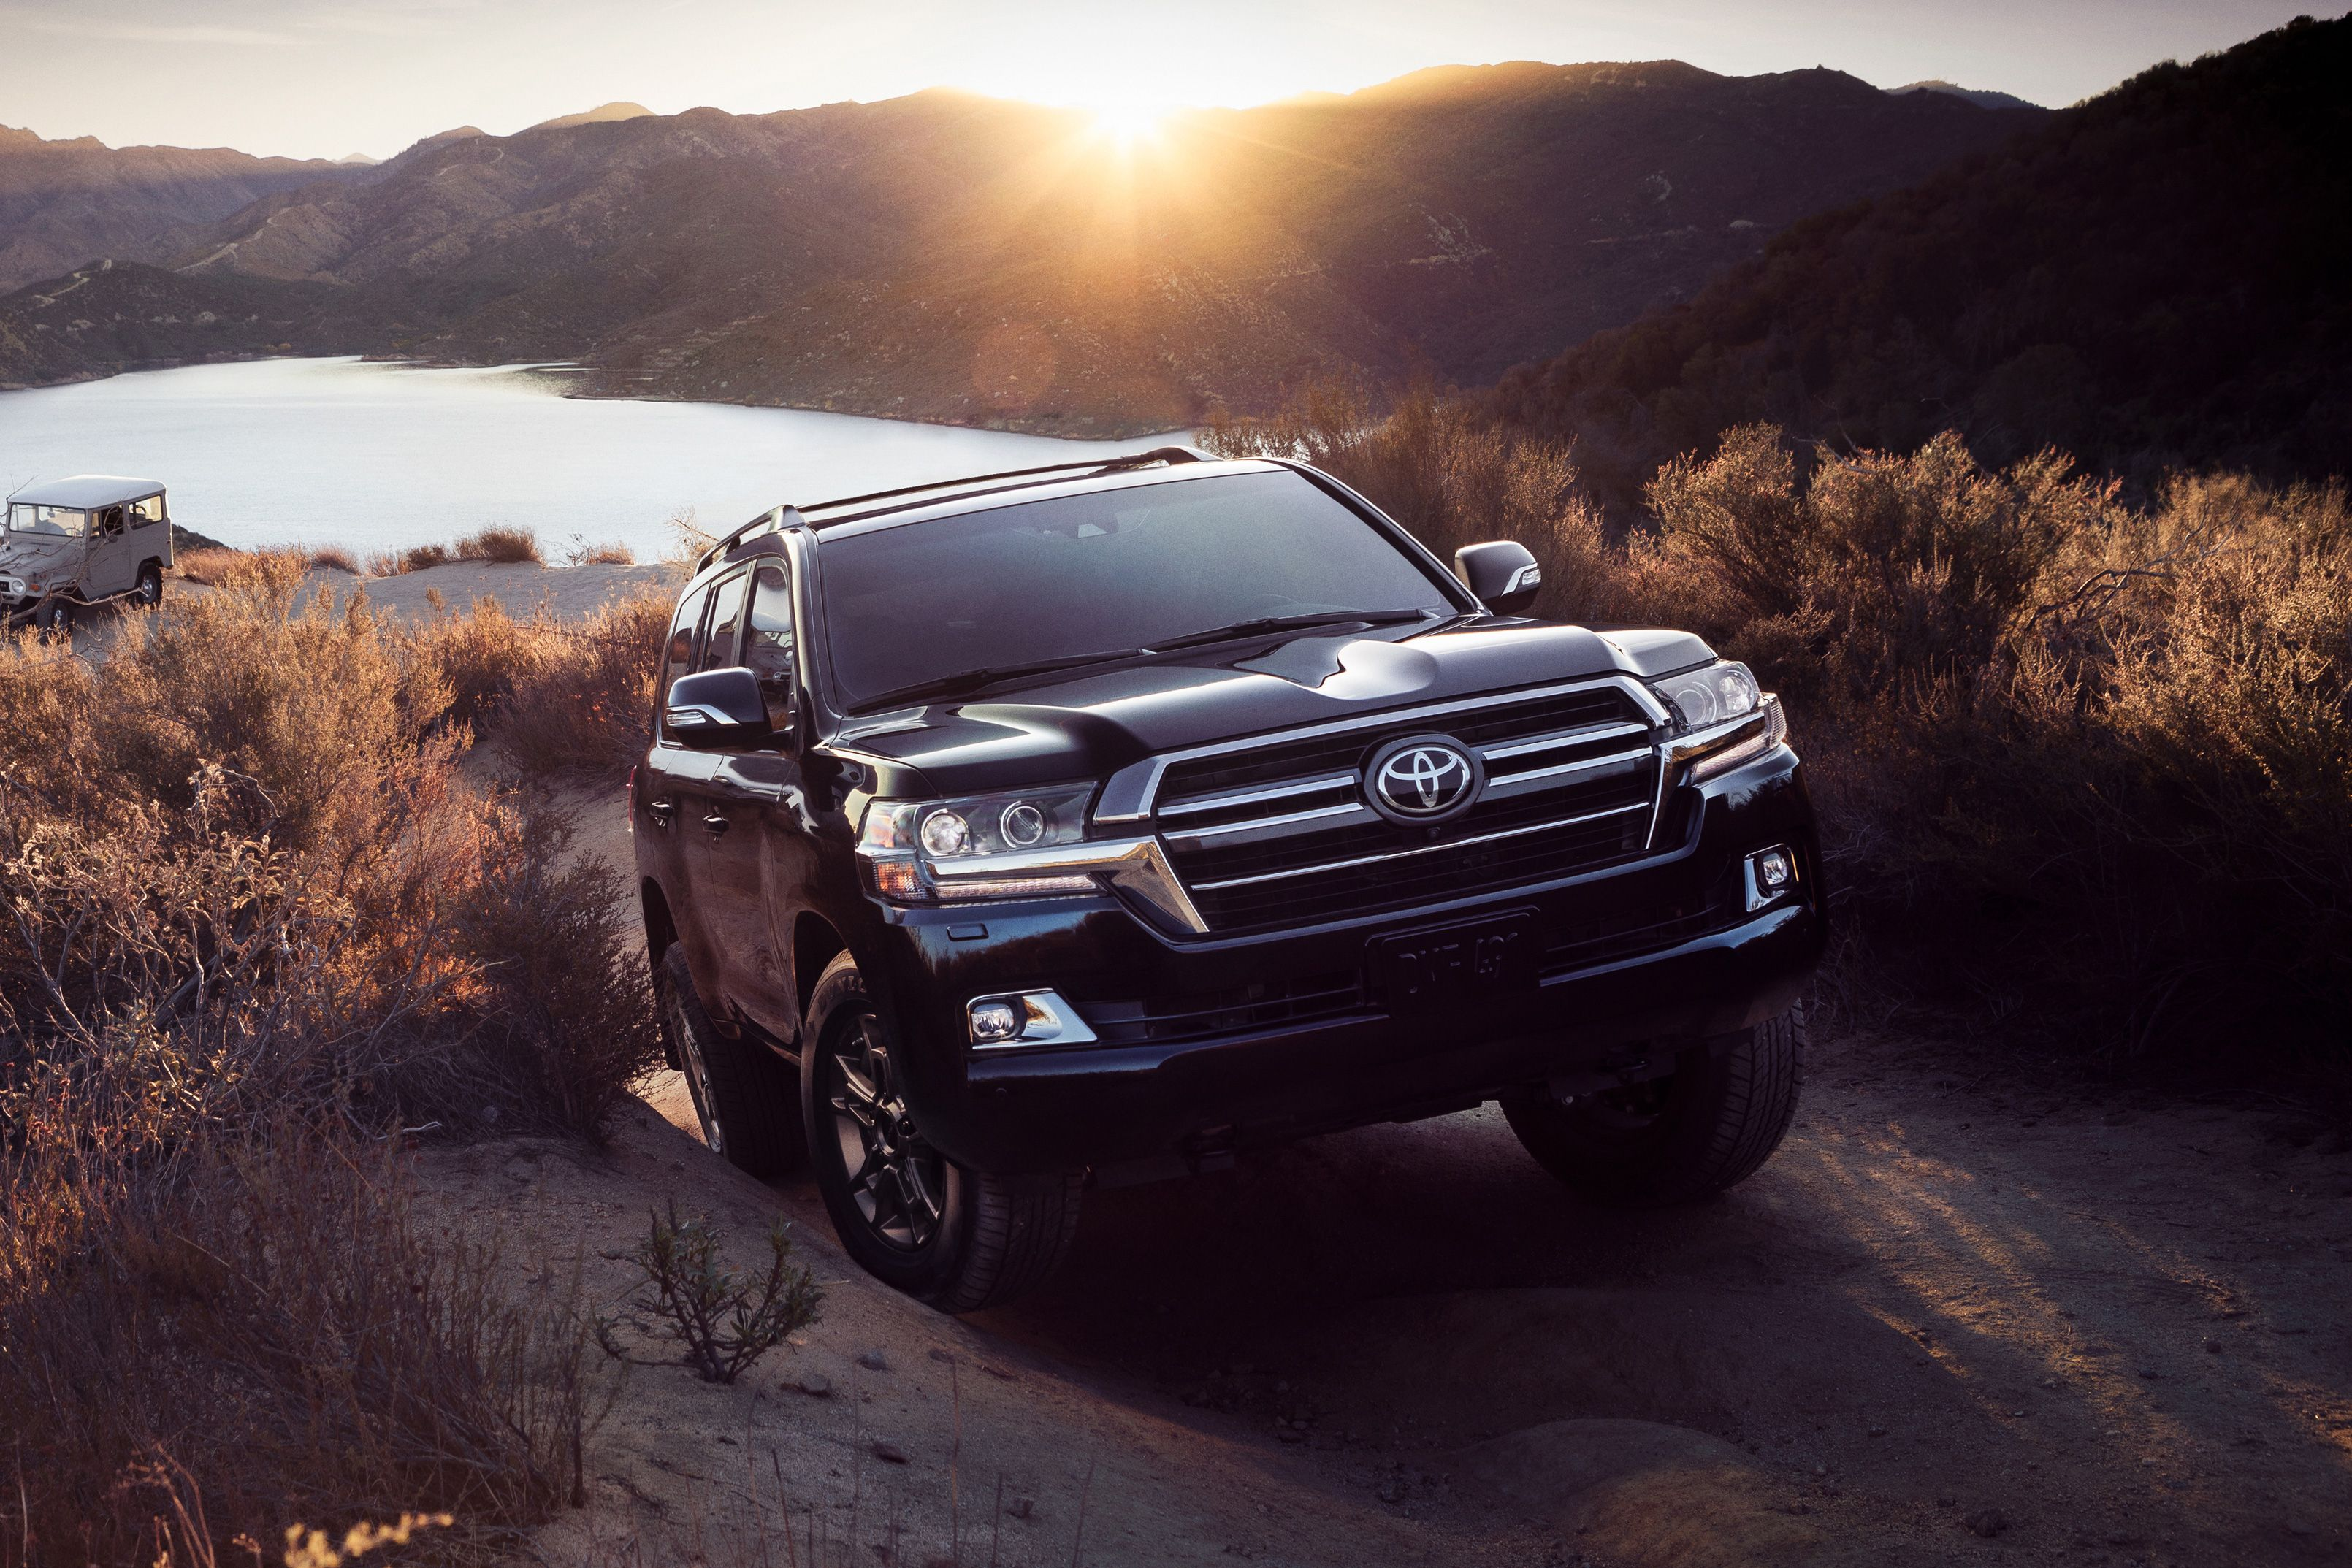 2021 Land Cruiser Redesign and Concept